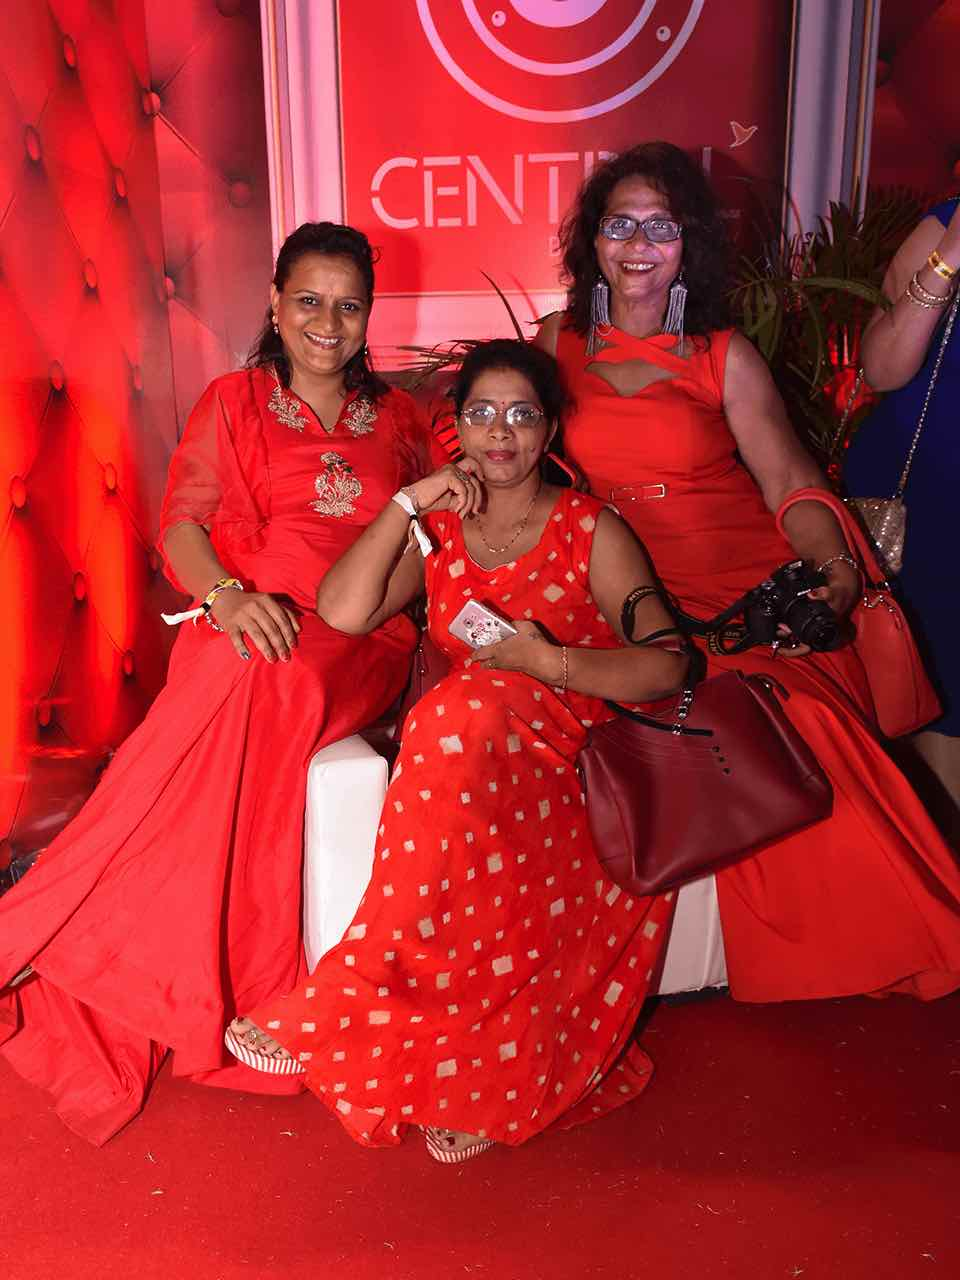 Red Dresses Central Event